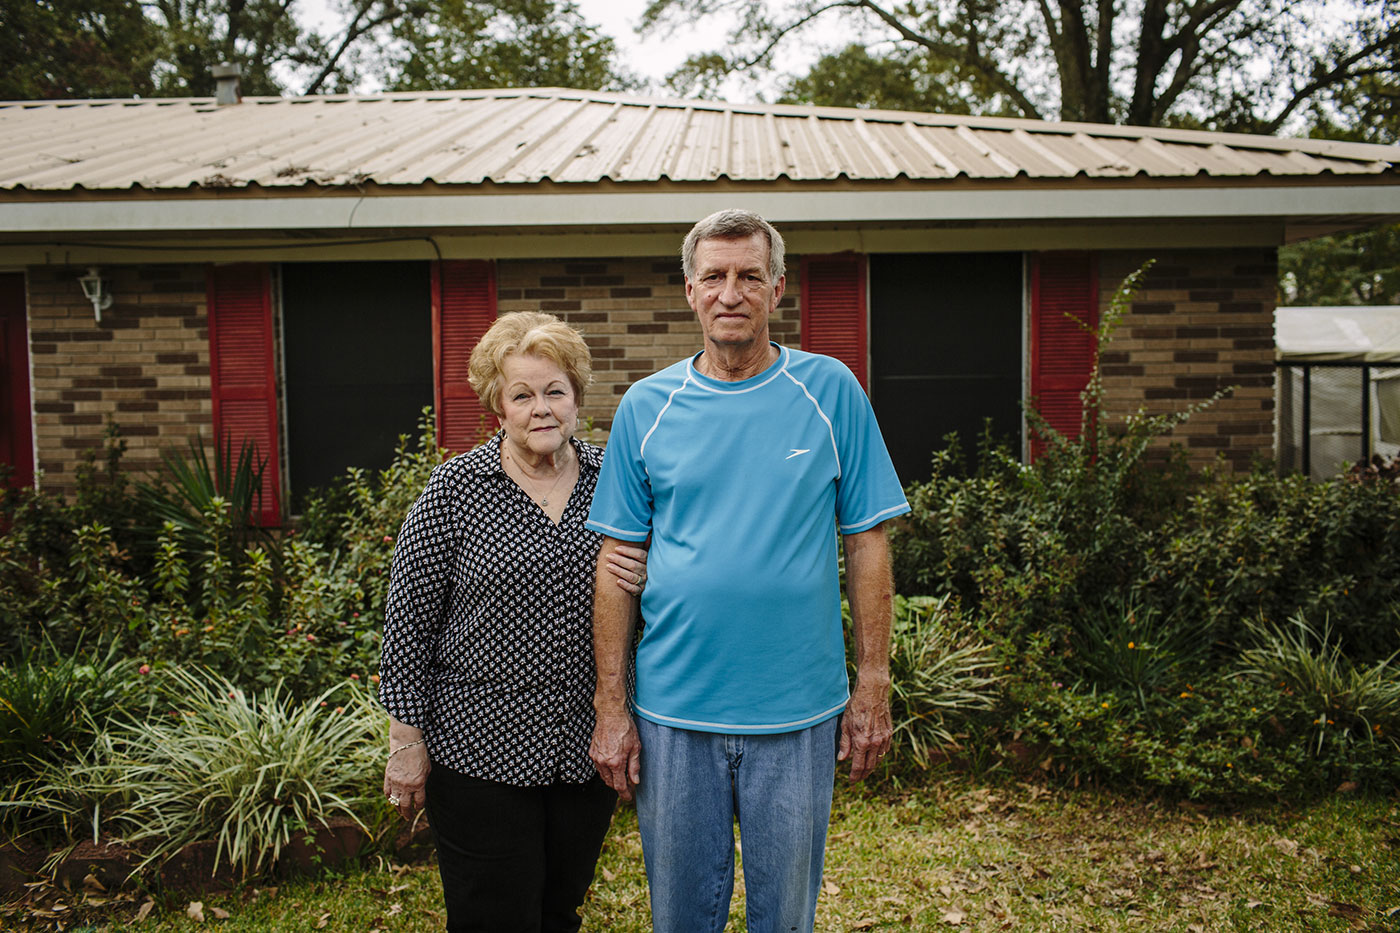 Rose and Dale Luttrell stand in their front yard in downtown Westlake, La., Oct. 22, 2015.